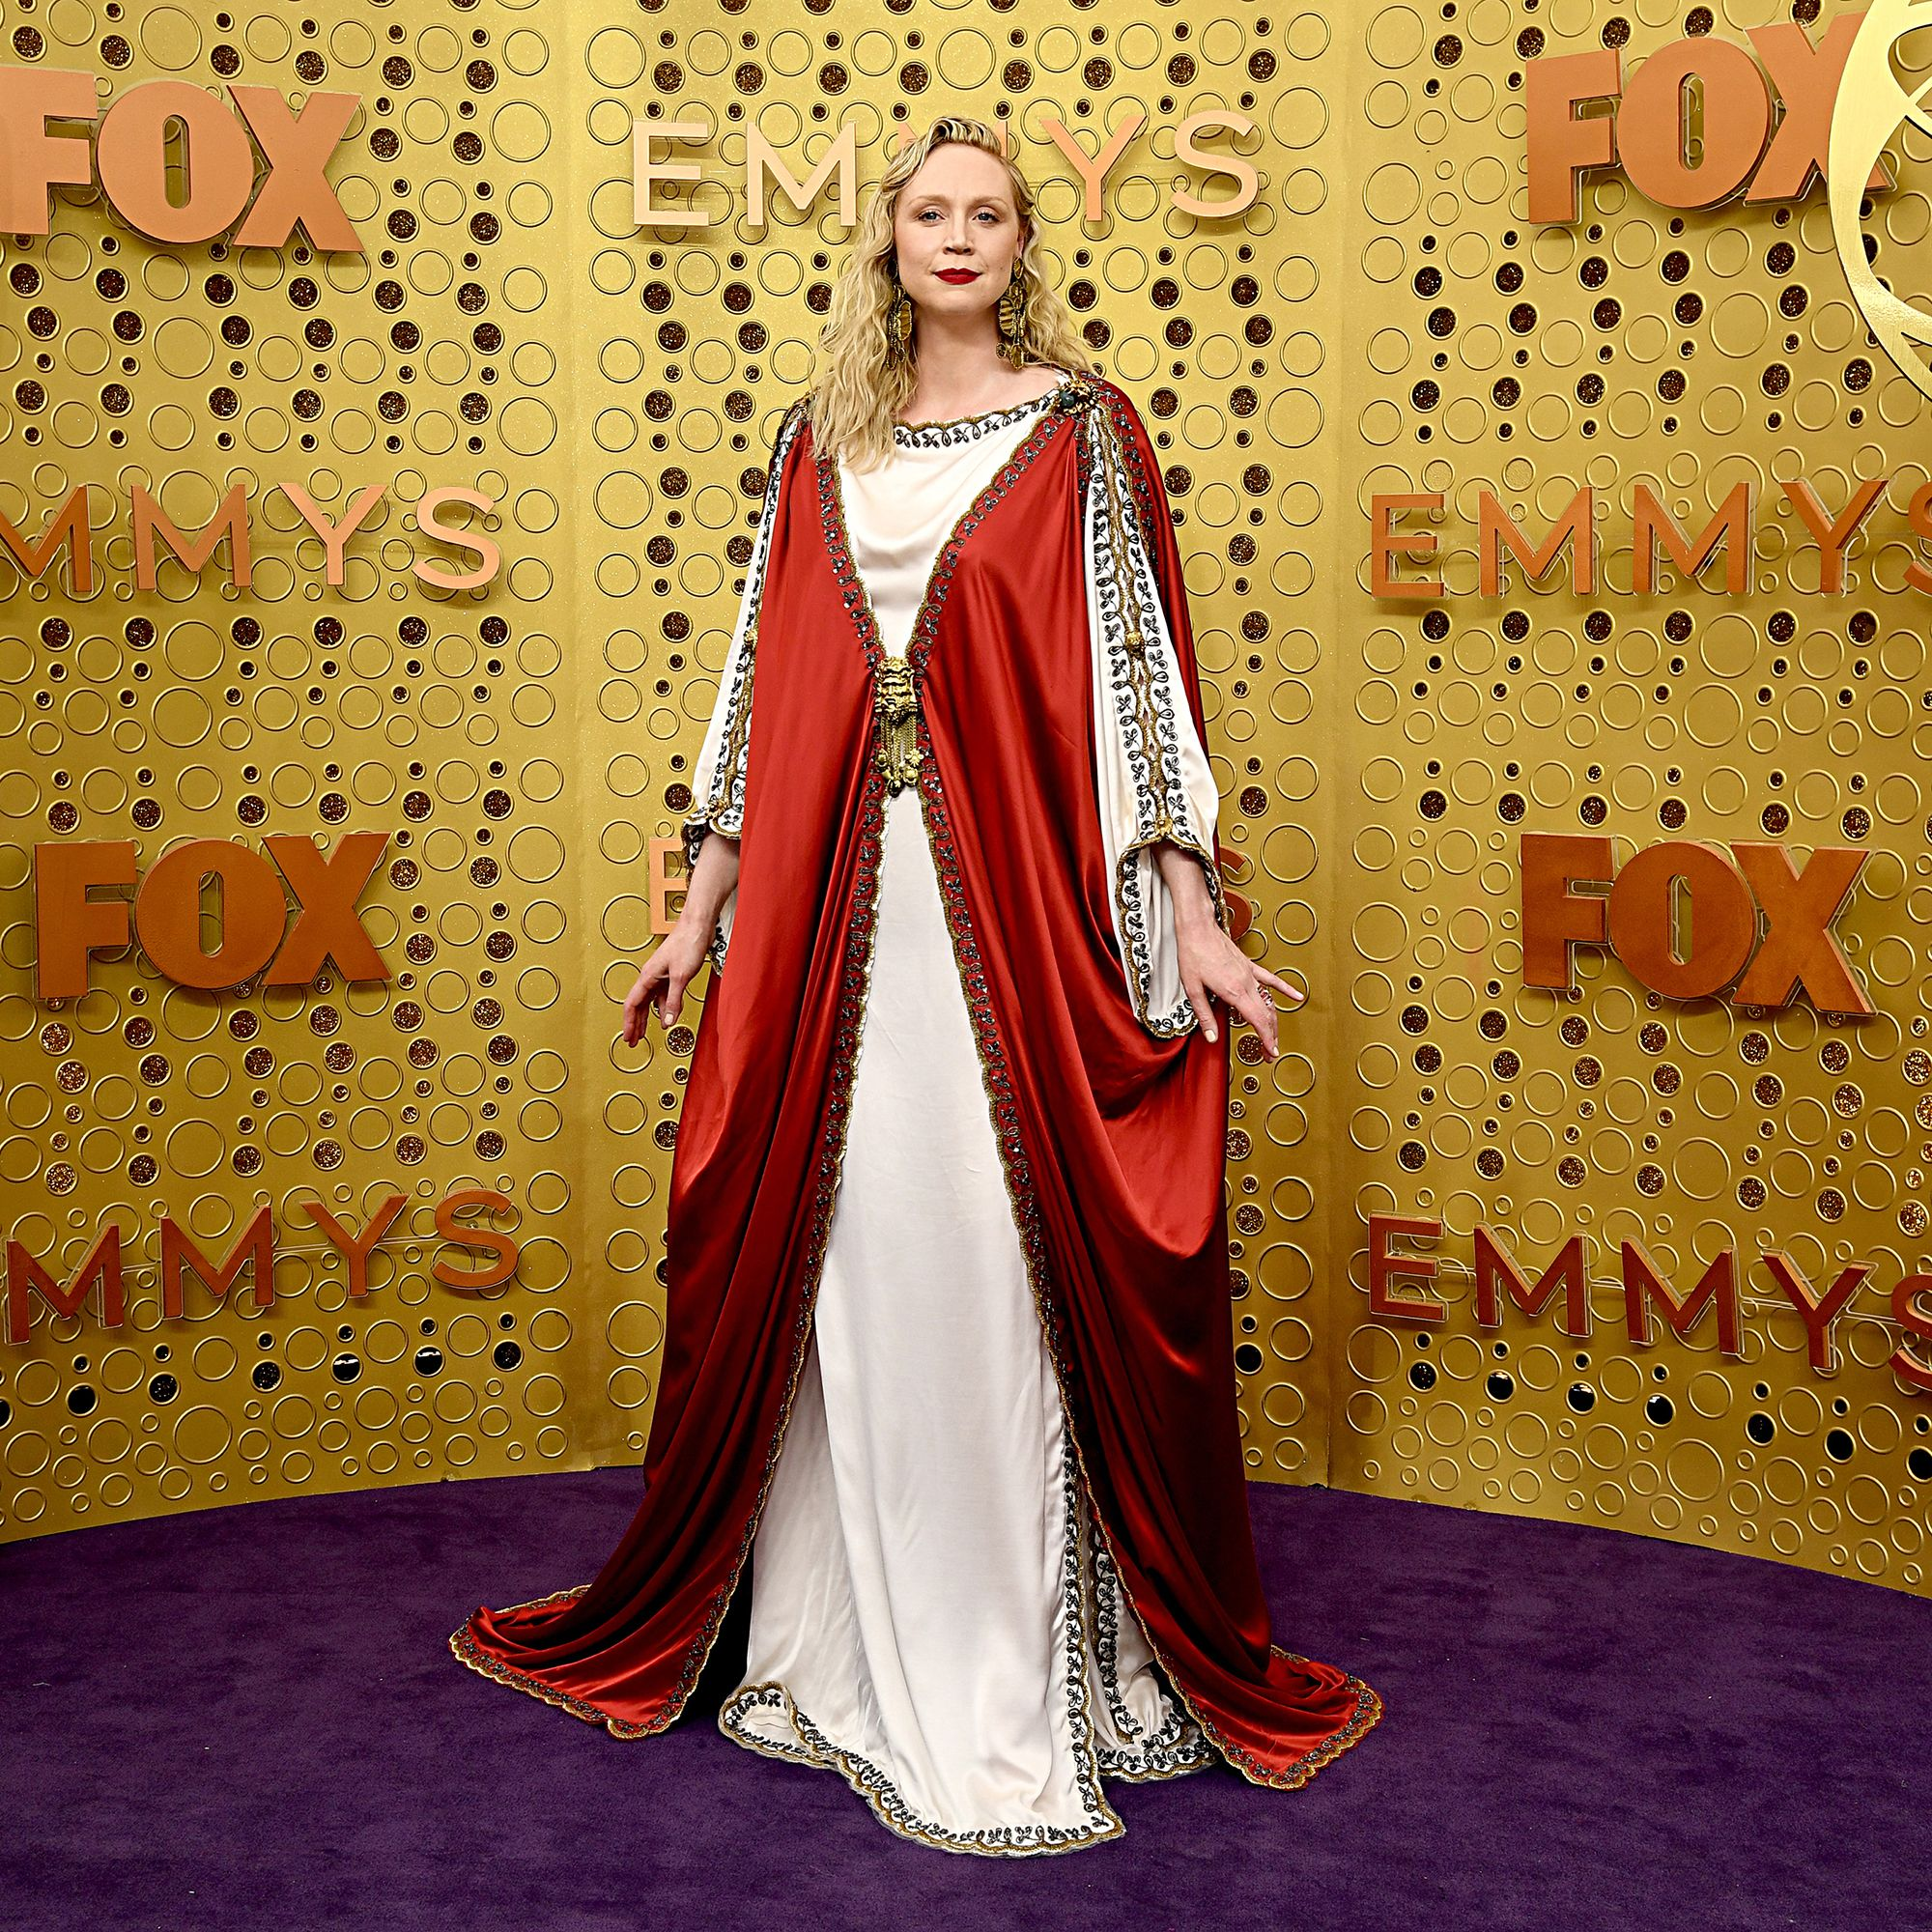 Gwendoline Christie's Emmys 2019 Look Draws Comparisons to Jesus and the Lannisters